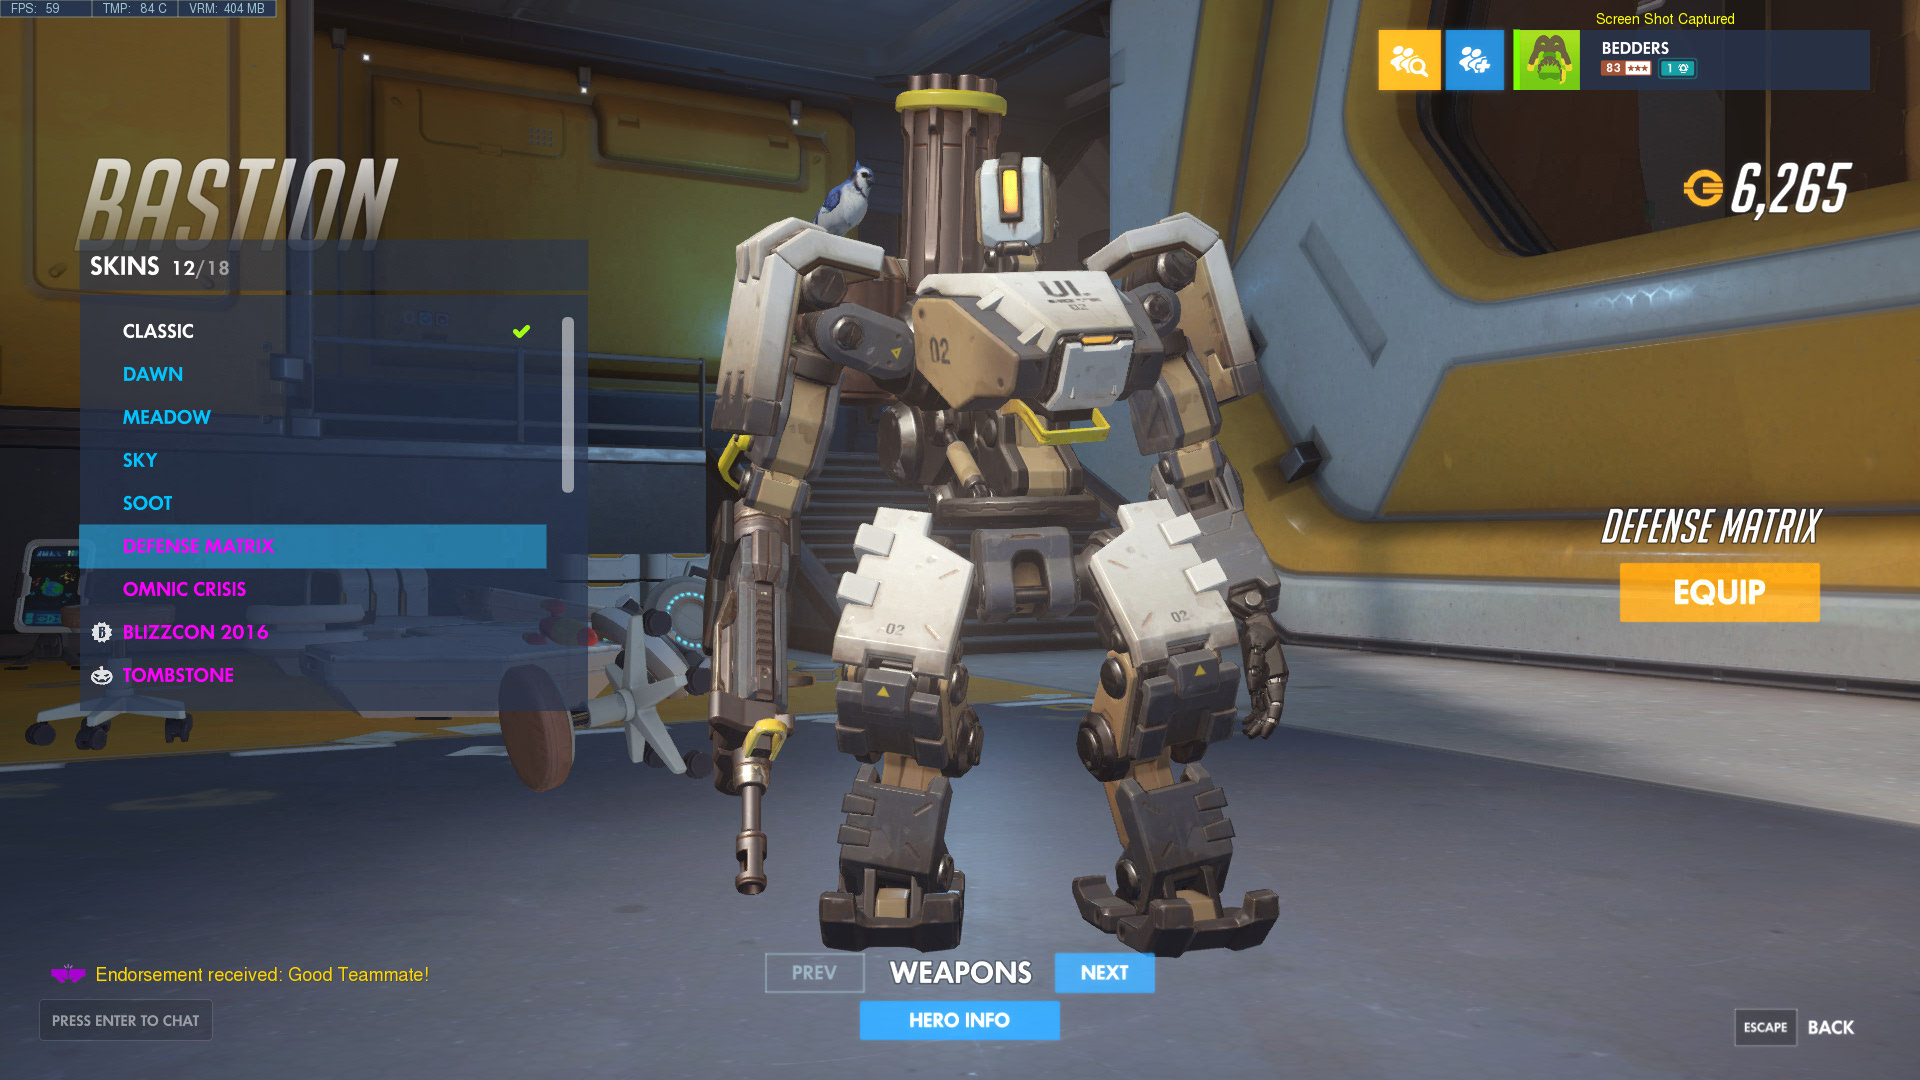 Bastion guide 2018 - Tips, tricks and strategy advice